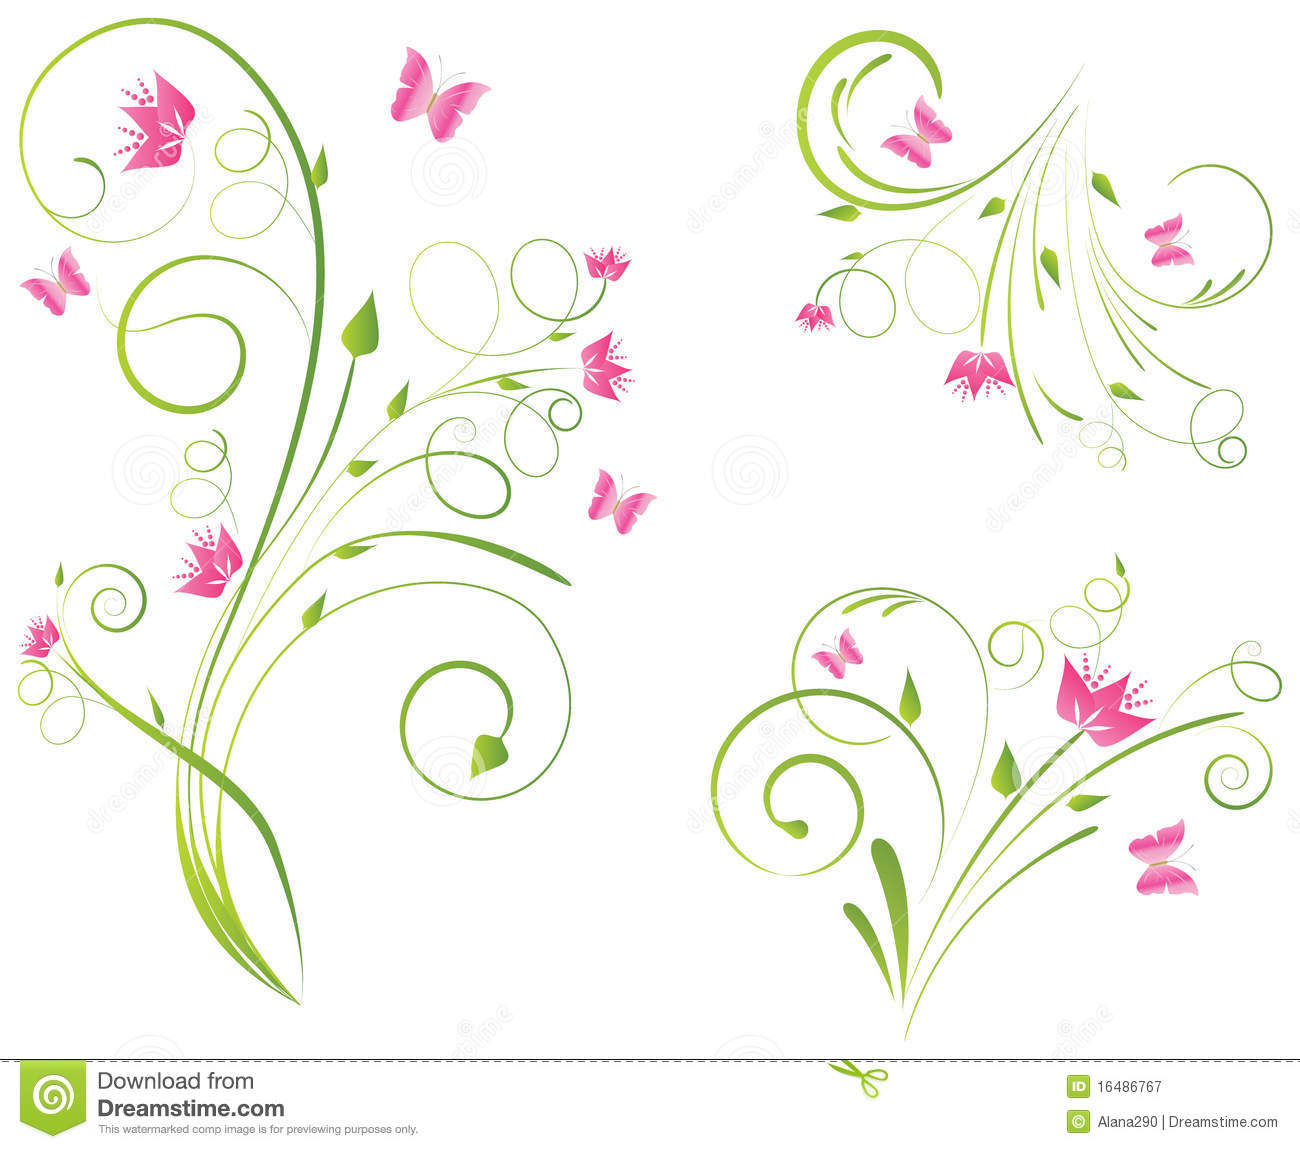 Florals designs and butterflies stock vector illustration of petal floral designs with pink flowers and butterflies mightylinksfo